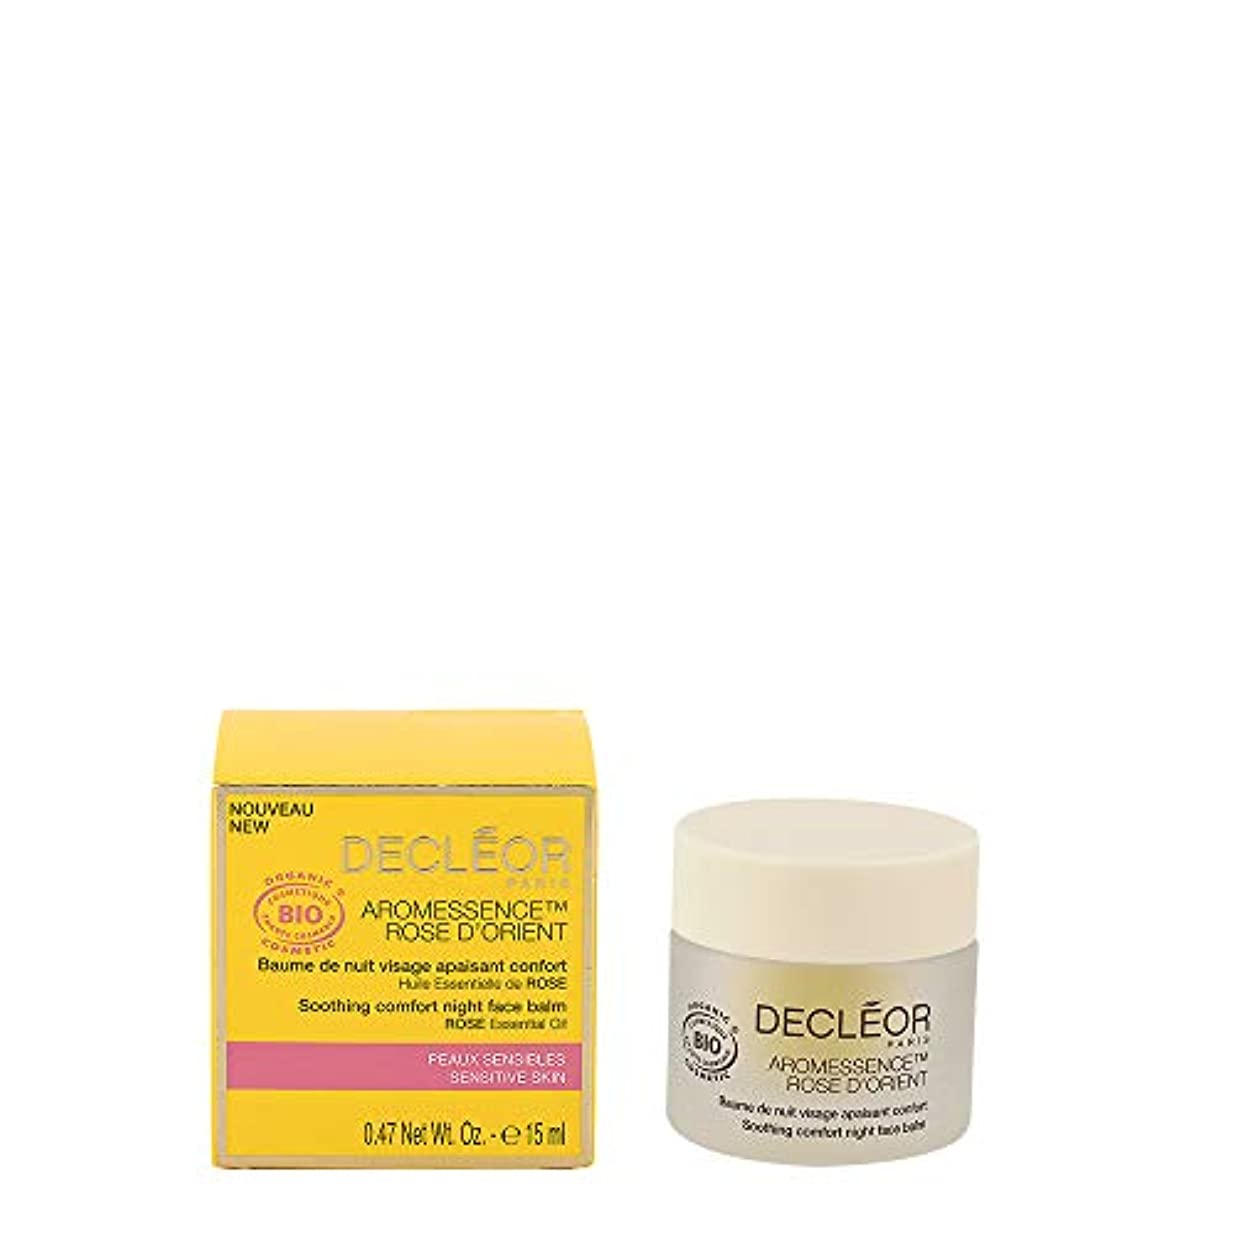 帰する構成鍔デクレオール Aromessence Rose D'Orient Soothing Comfort Night Face Balm - For Sensitive Skin 15ml/0.47oz並行輸入品